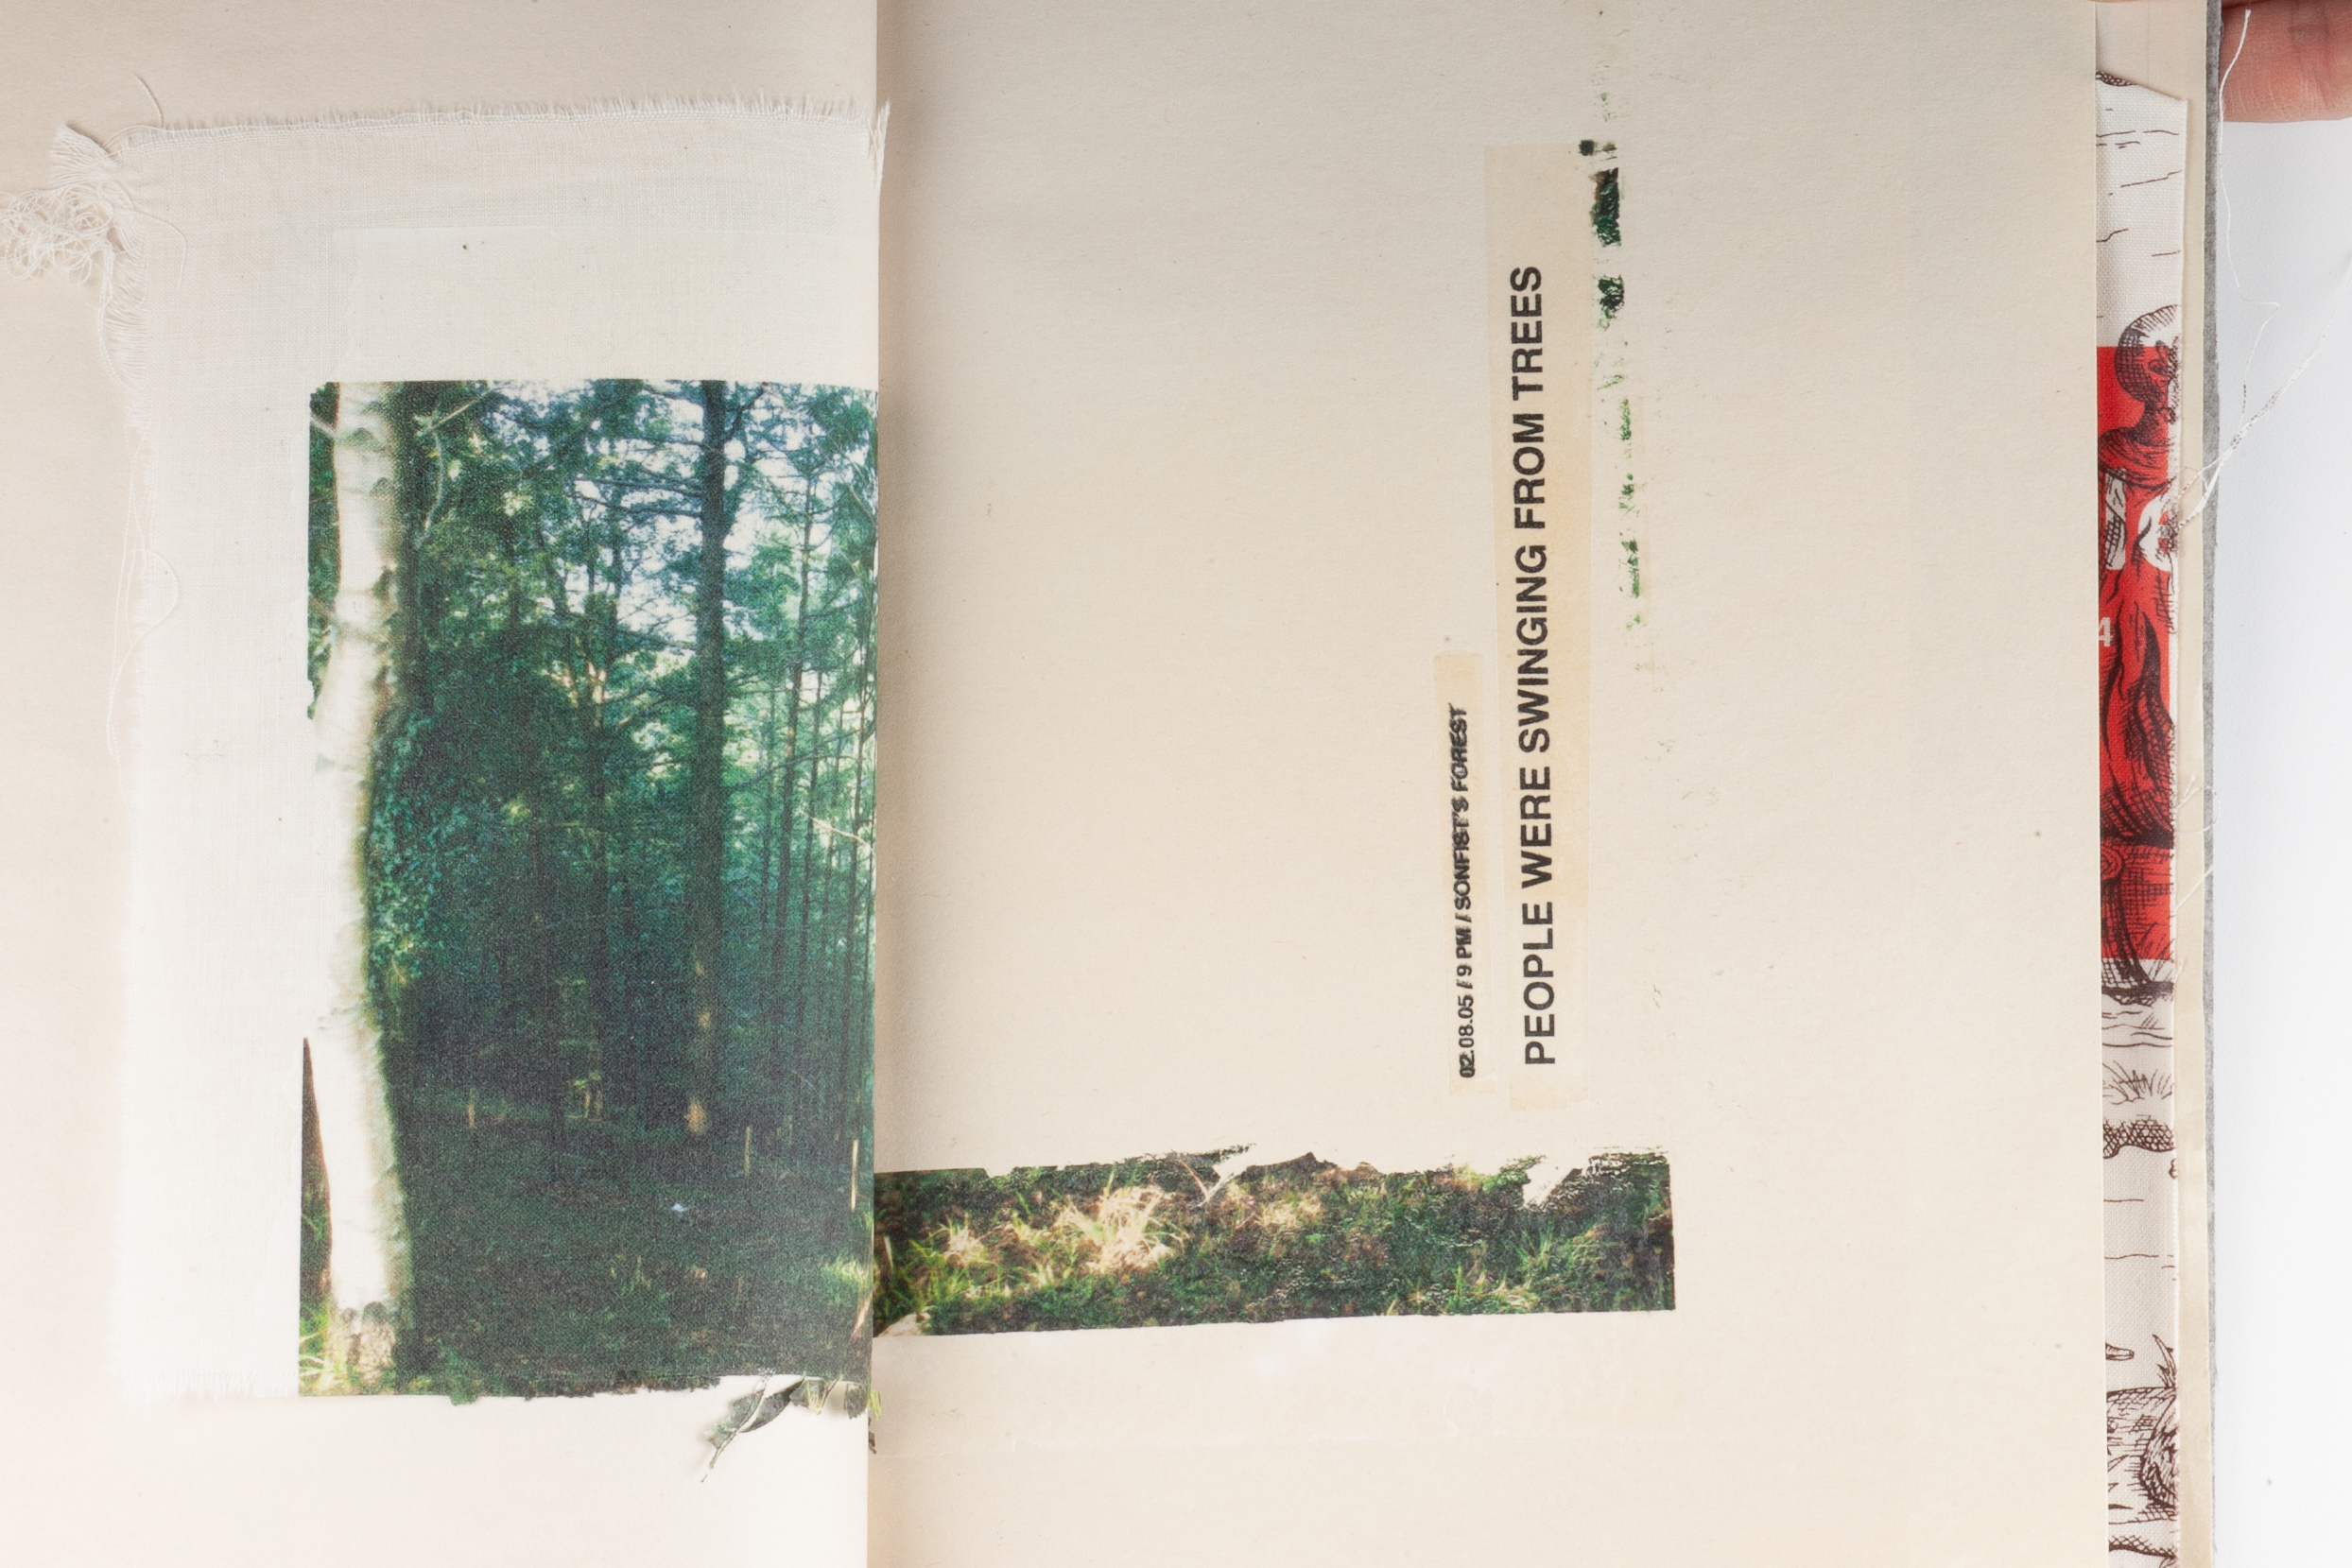 The Hunt / Book, Edition of 1. Transfer, digital printing; paper, fabric, fabric paper.  2005